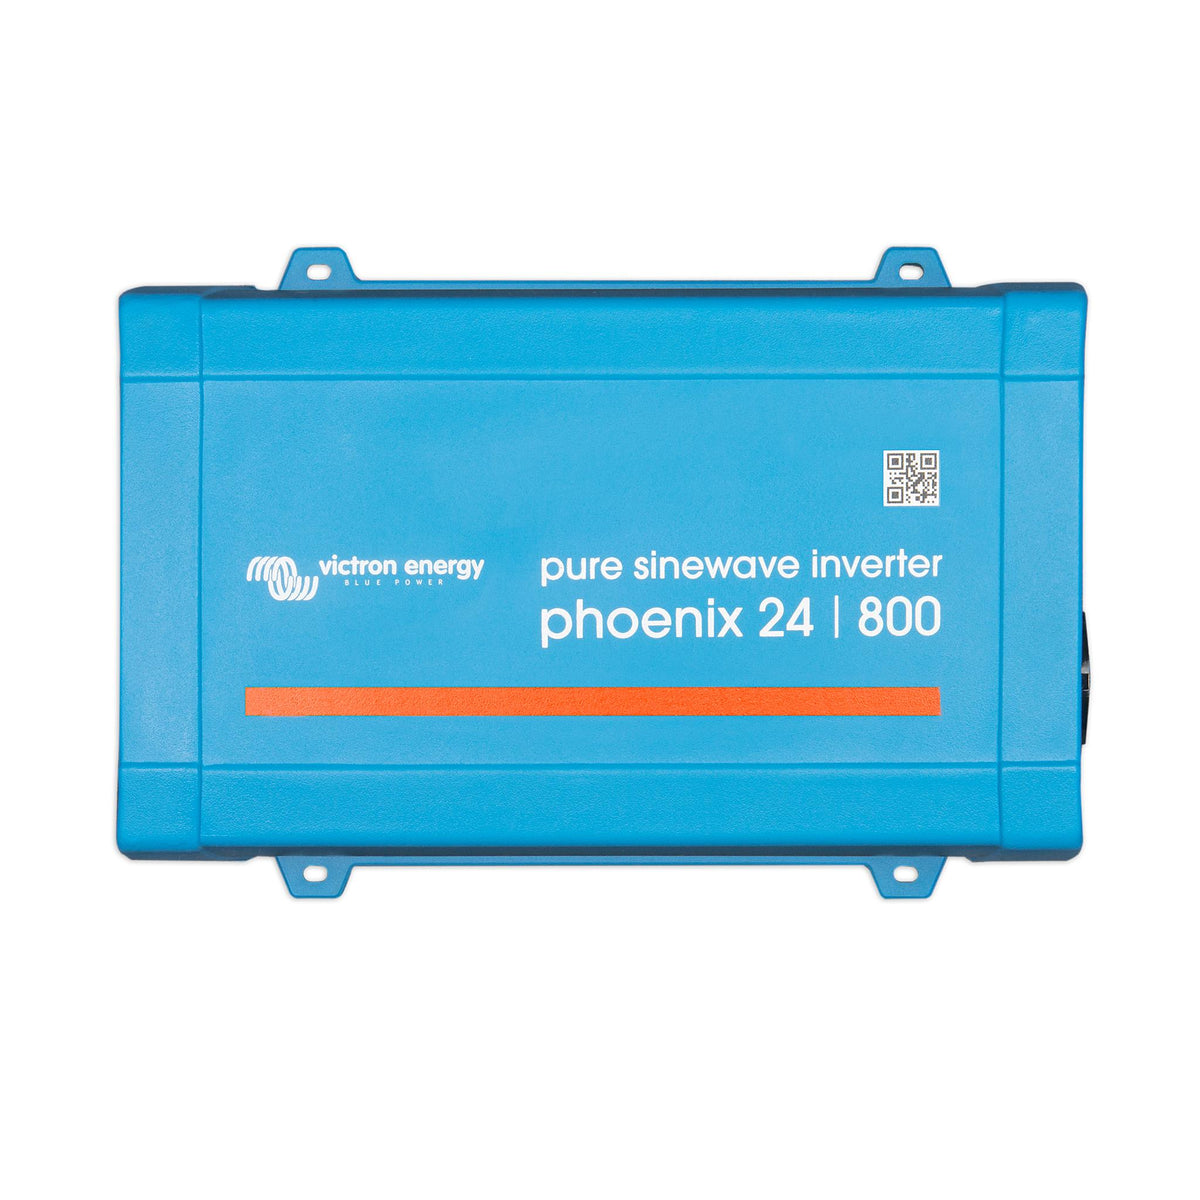 Victron Energy Phoenix Inverter 24/800 230V VE.Direct IEC PIN241800100